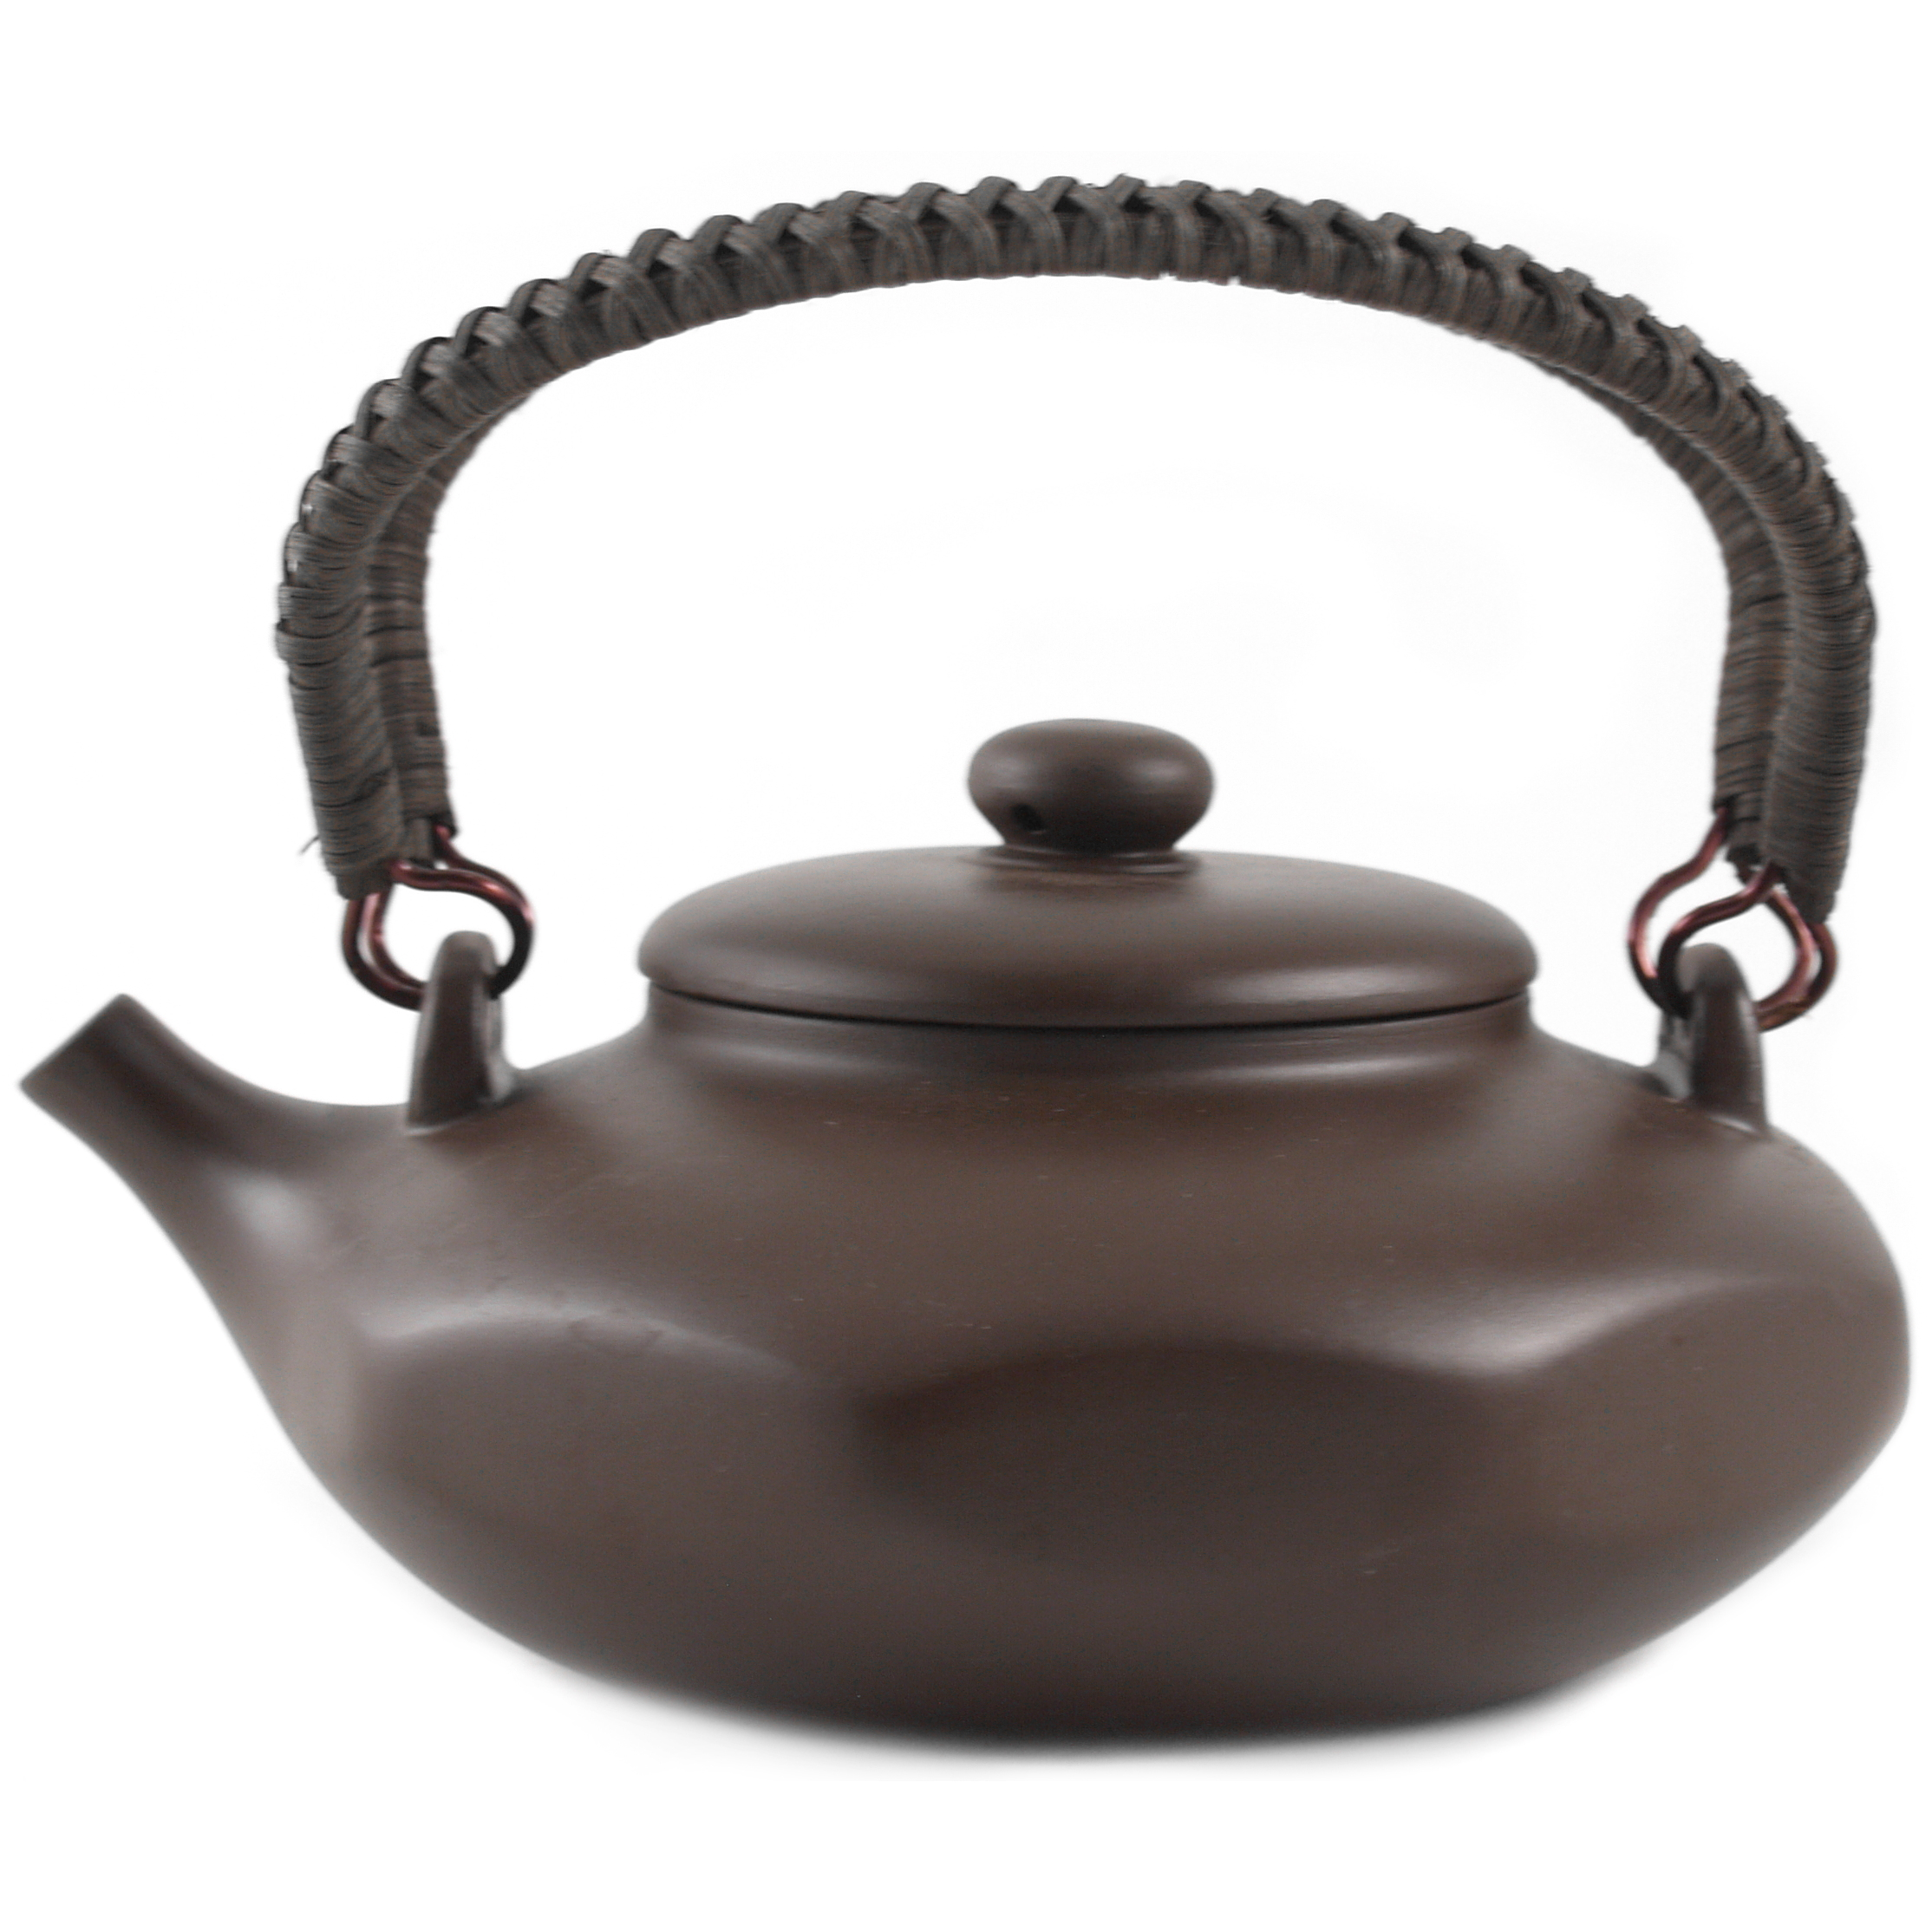 Yixing Clay Nonagon Braided Teapot, 16 Ounce